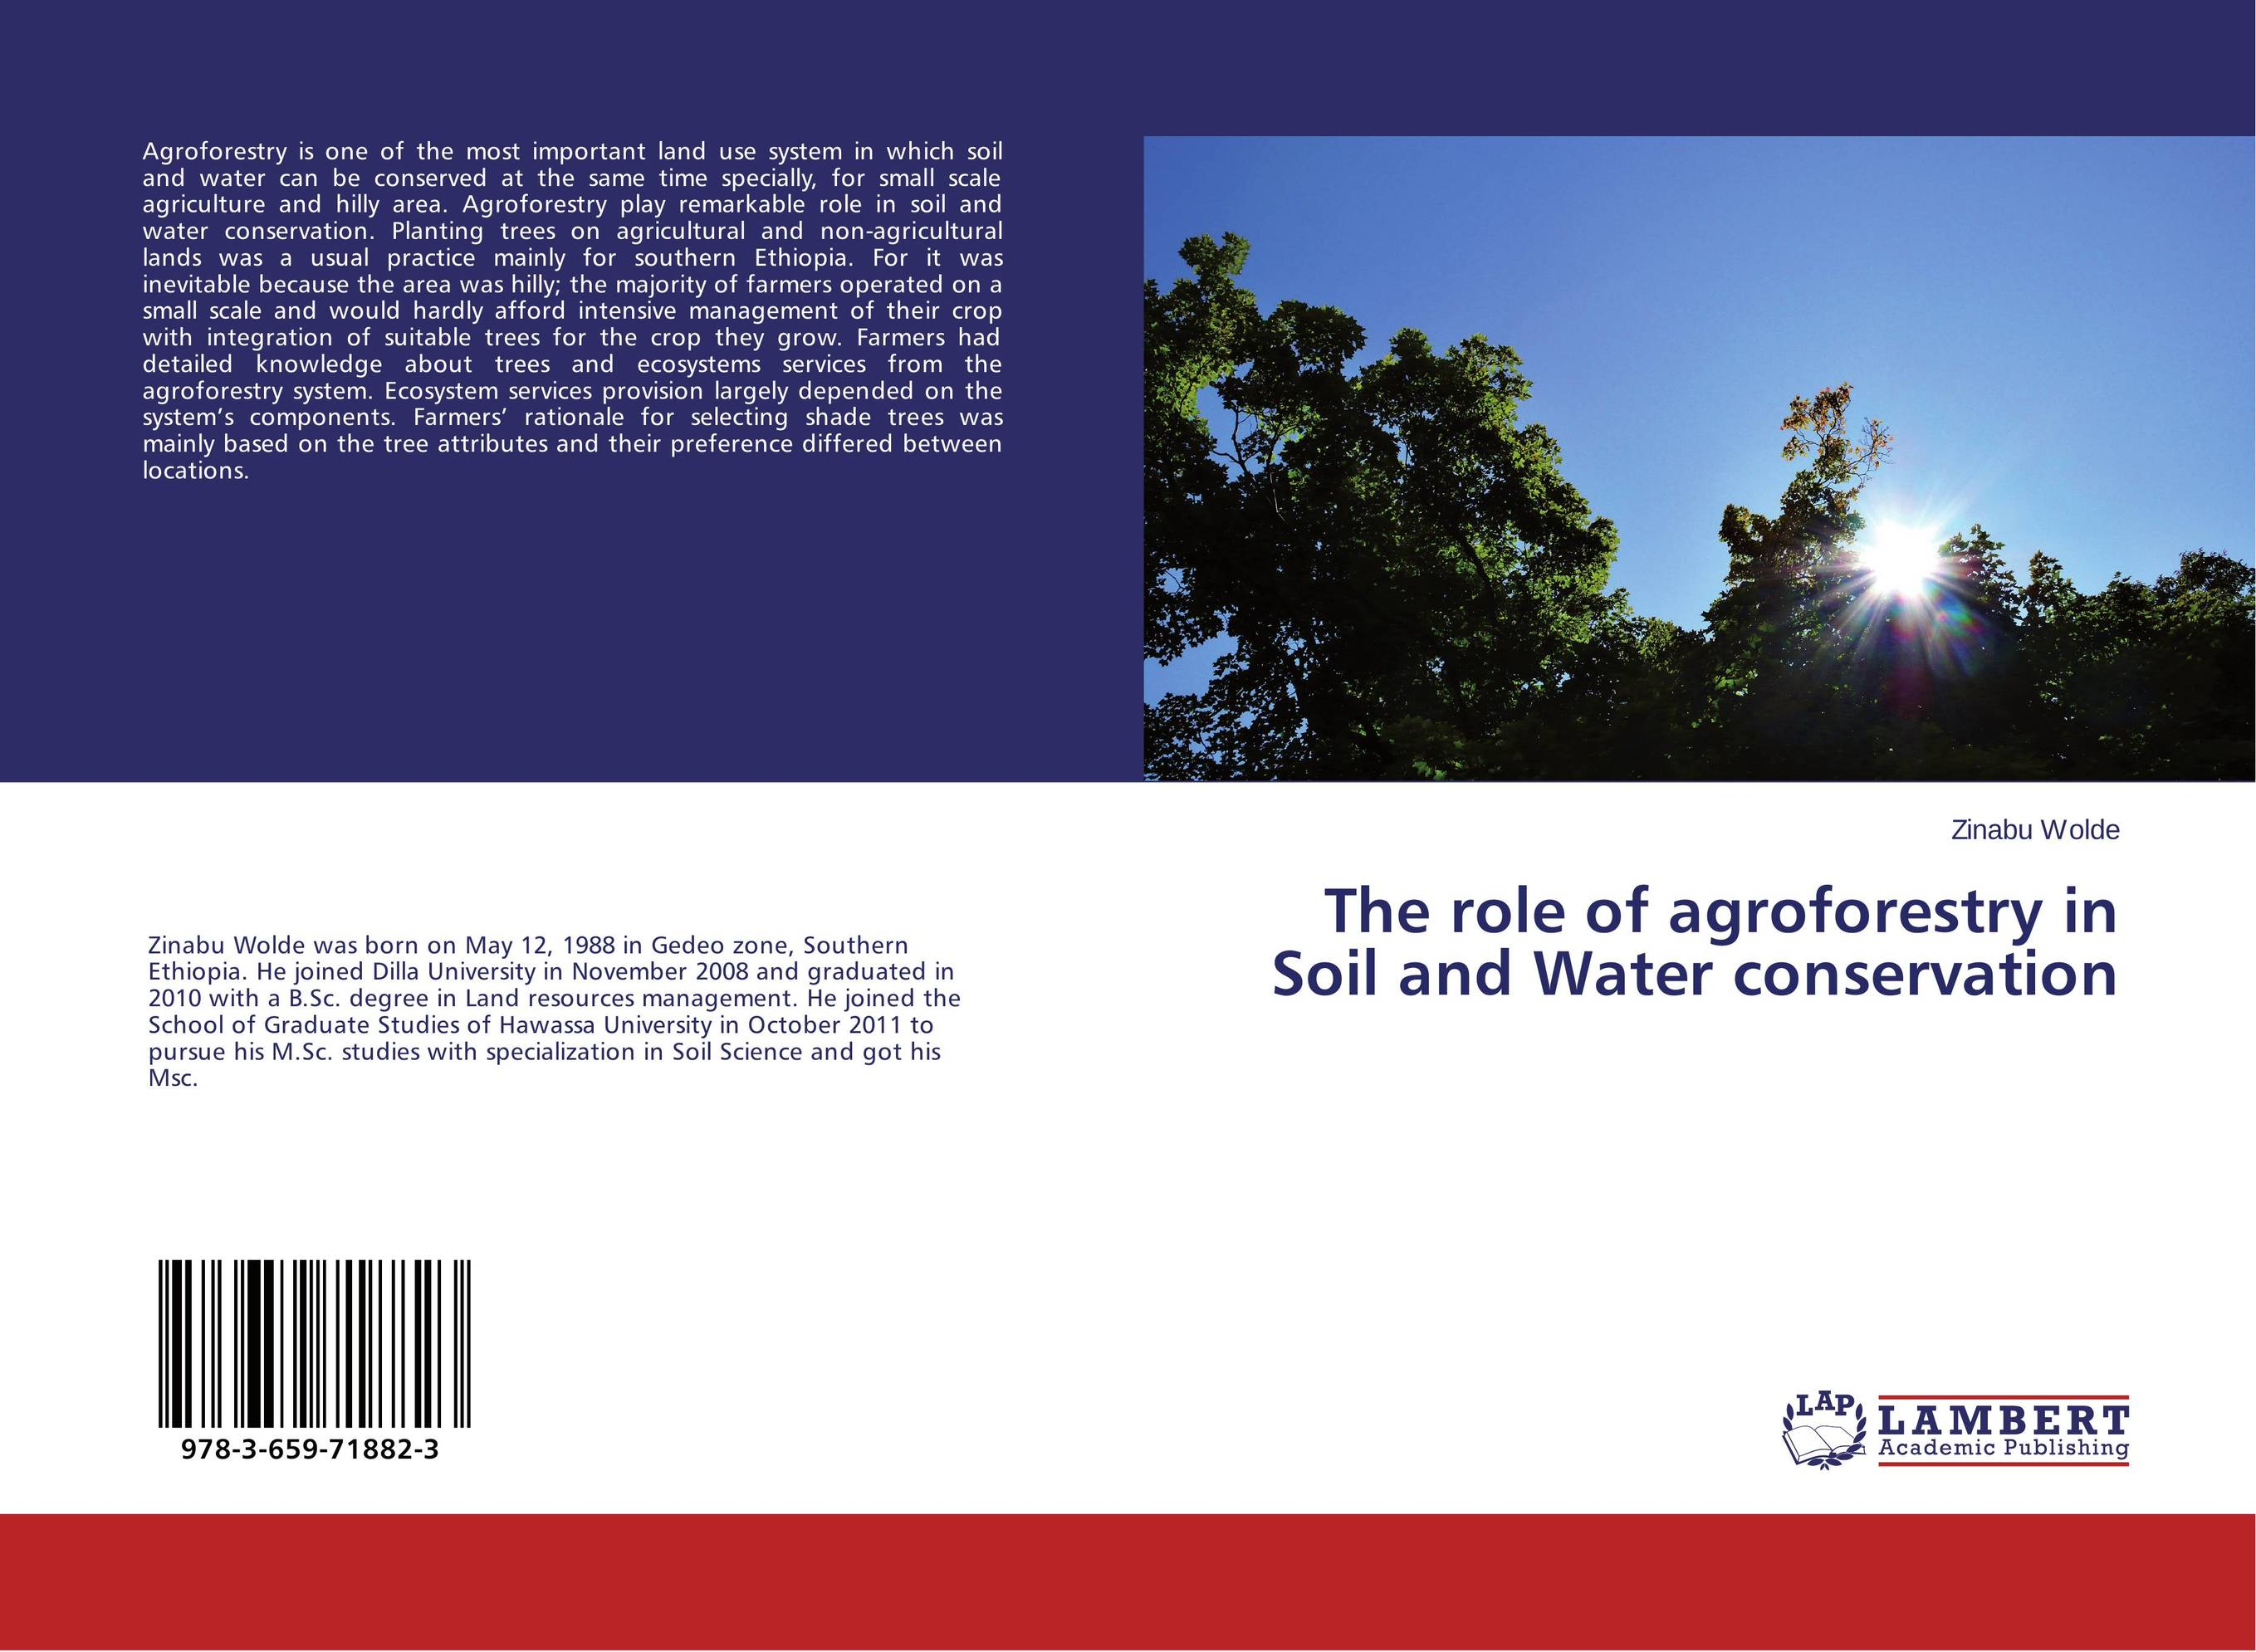 The role of agroforestry in Soil and Water conservation role of women in agroforestry practices management